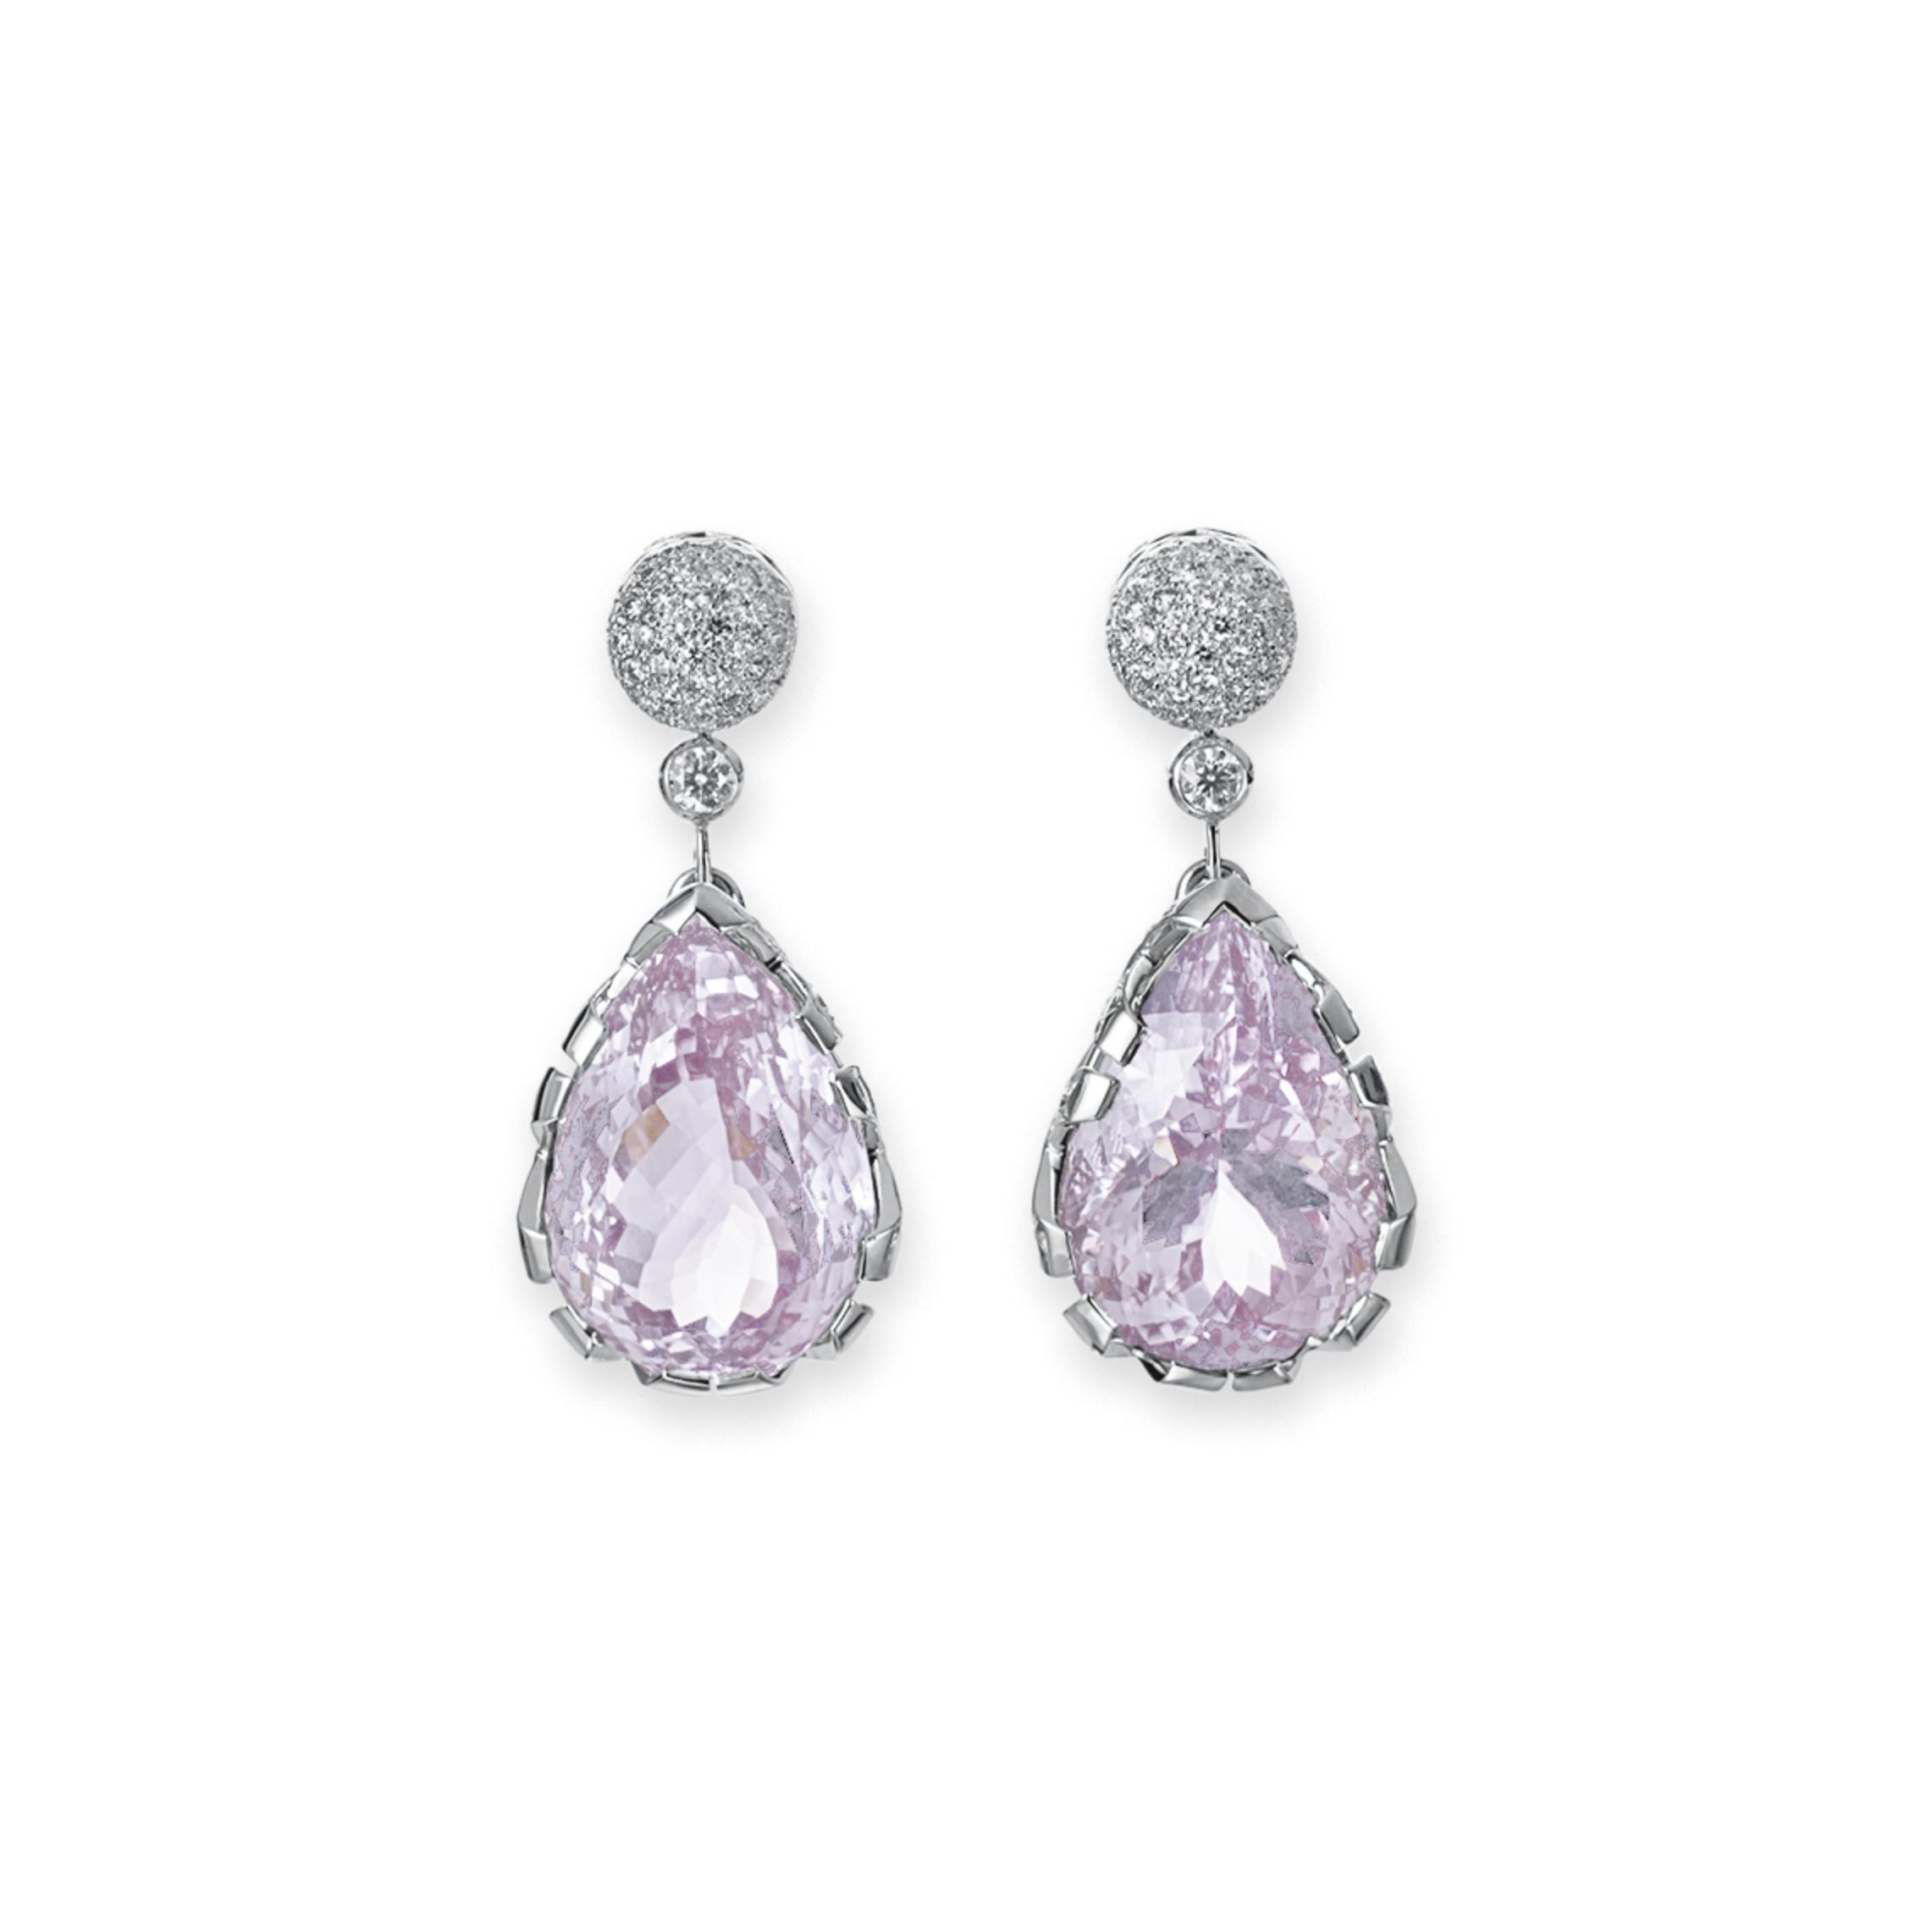 store enhancer pendant diamond earrings and kunzite